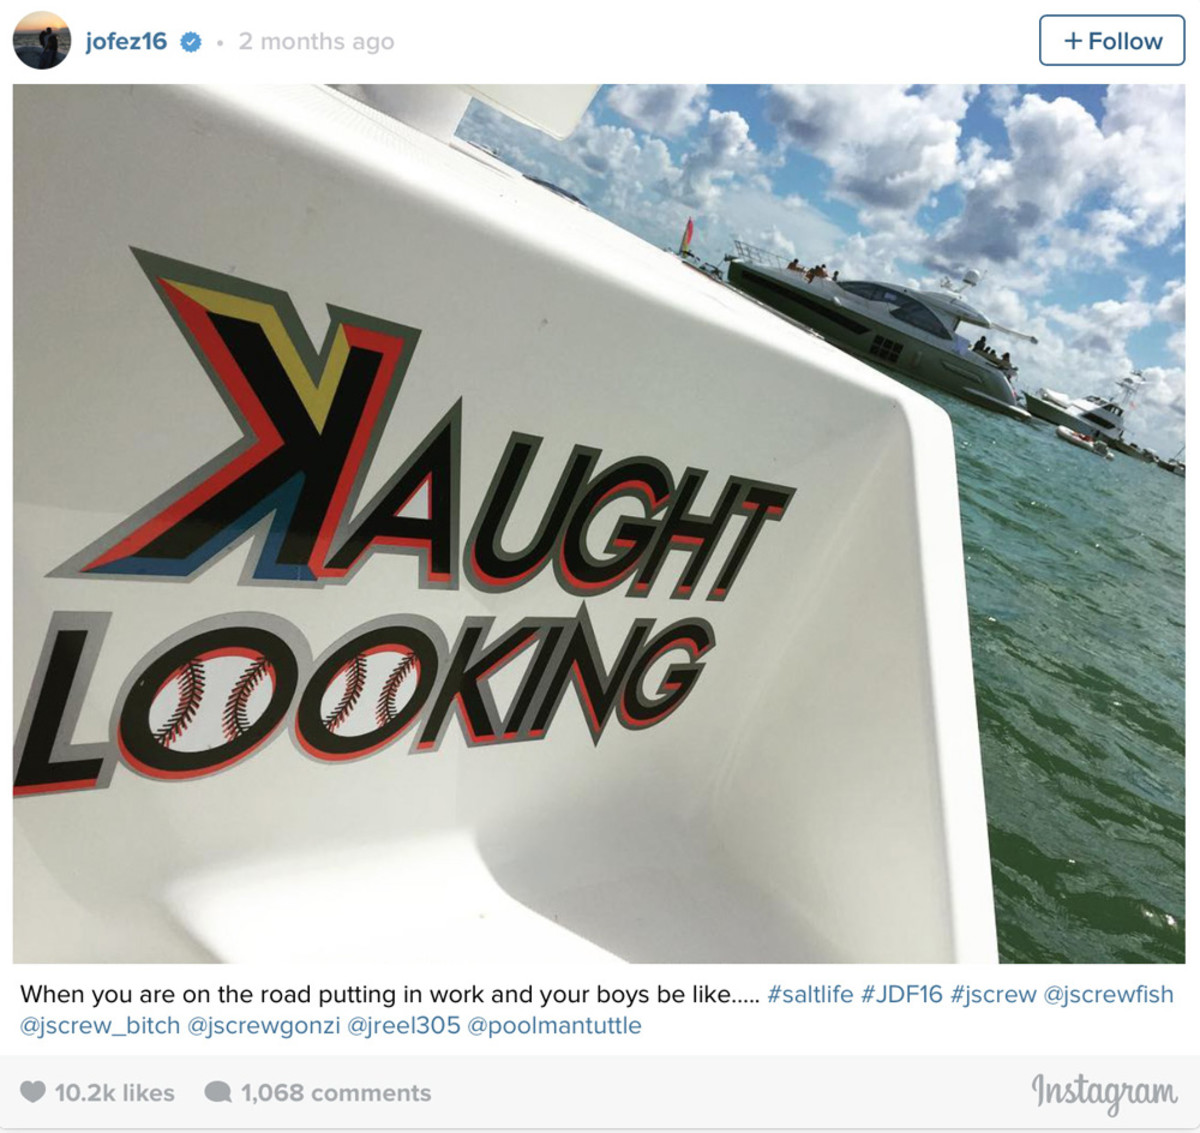 This Instagram photo by Miami Marlins pitcher Jose Fernandez shows the name of his boat, Kaught Looking. The name is spelled with a backward K, the symbol for a called third strike. The boat crashed early Sunday morning, killing Fernandez and two others on board.